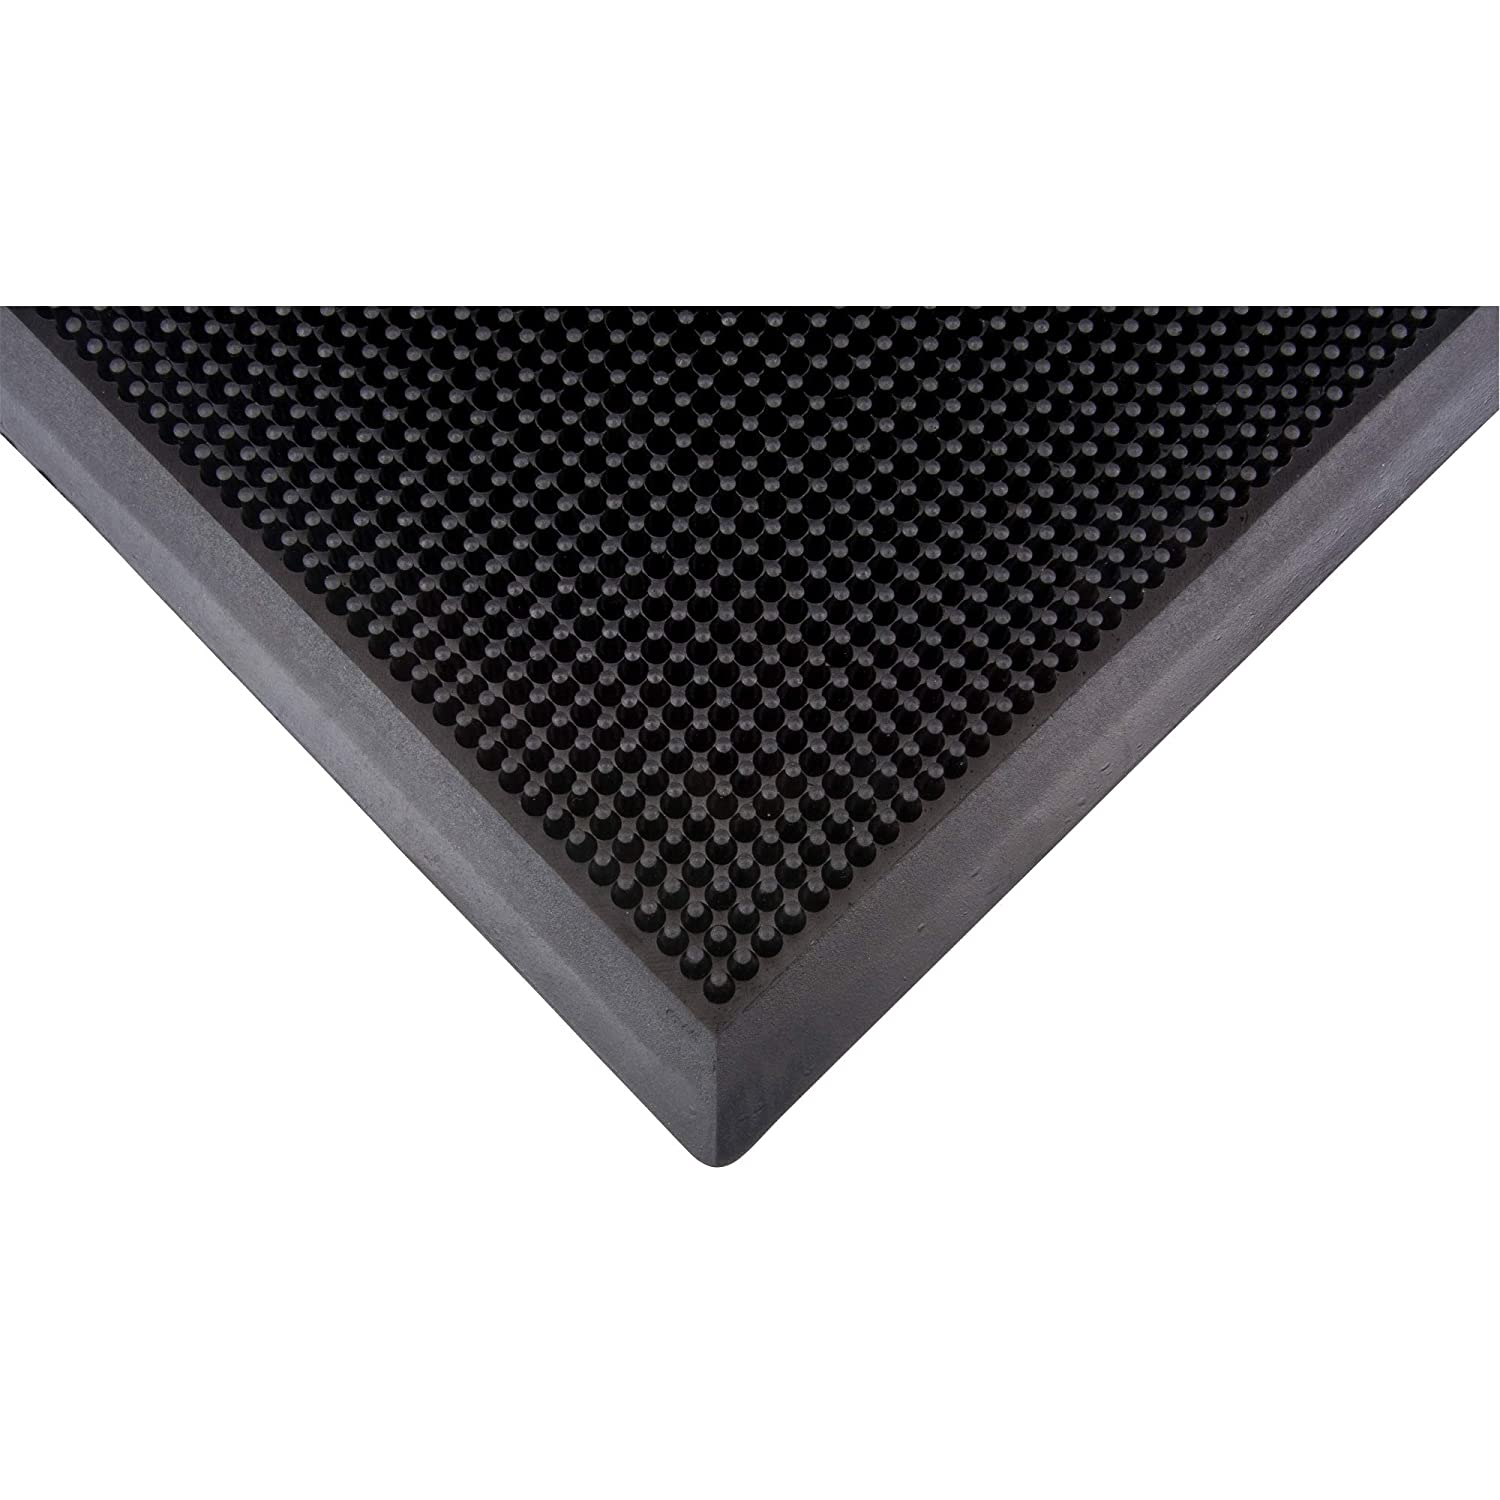 Rubber Black Textured Zenith Safety Products Scraper Mat 32 by 39-Inch